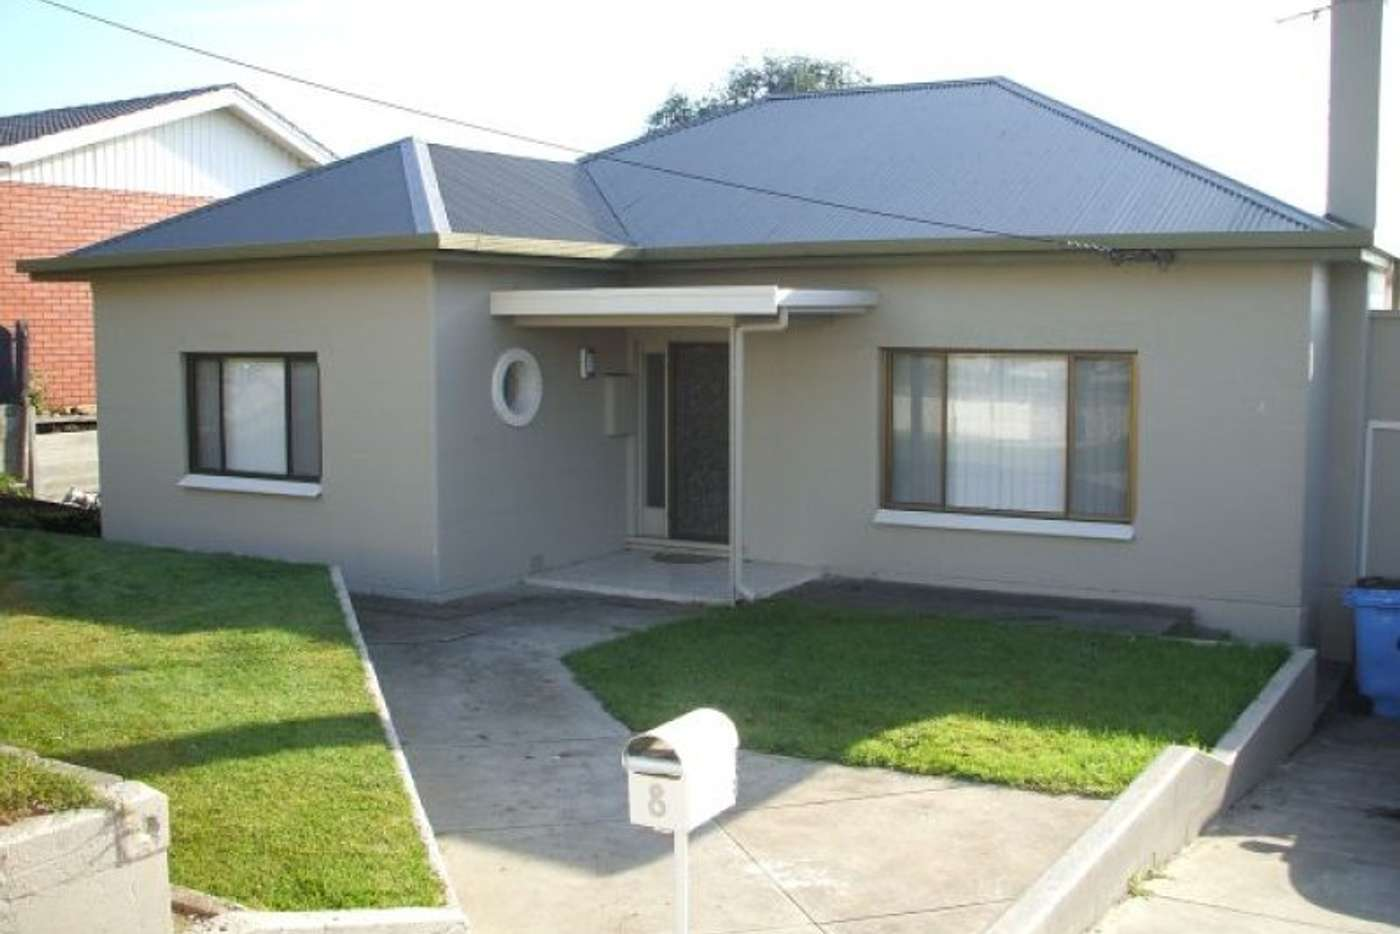 Main view of Homely house listing, 8 Franklin Terrace, Mount Gambier SA 5290